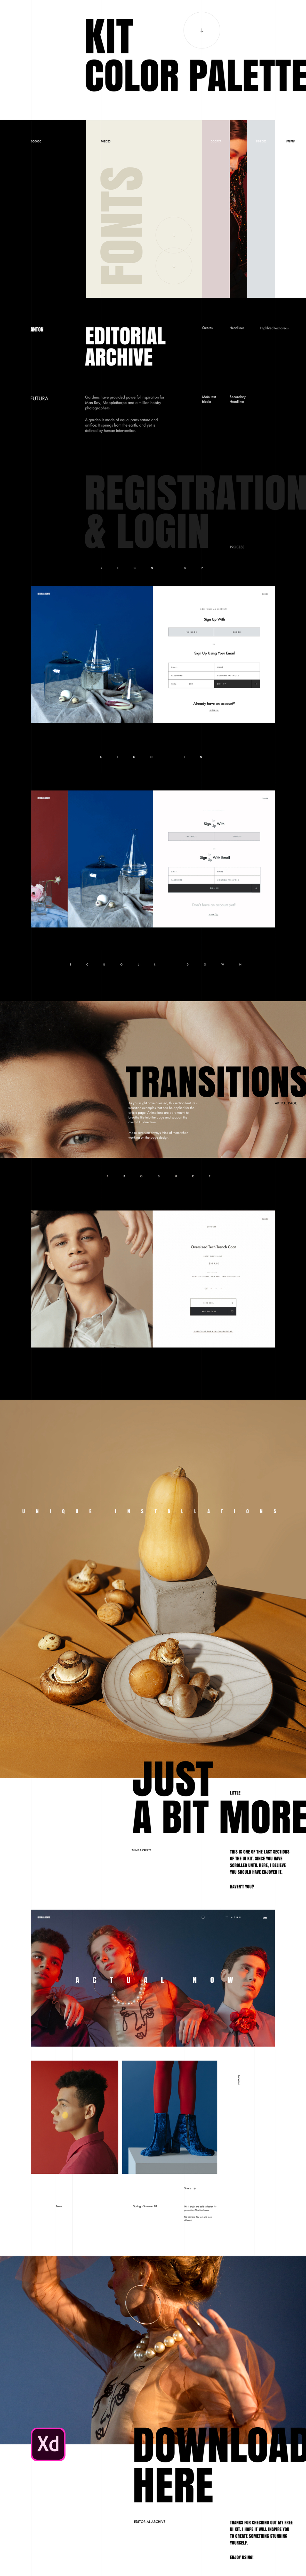 Fashion Editorial UI Kit - This editorial and e-commerce UI Kit features 18 different design pages and more than 120 various components. This UI kit is built to help users create fashion editorial, as well as designer marketplace, apps, and websites. It features elements for a homepage, product grid, single product page, and blog.